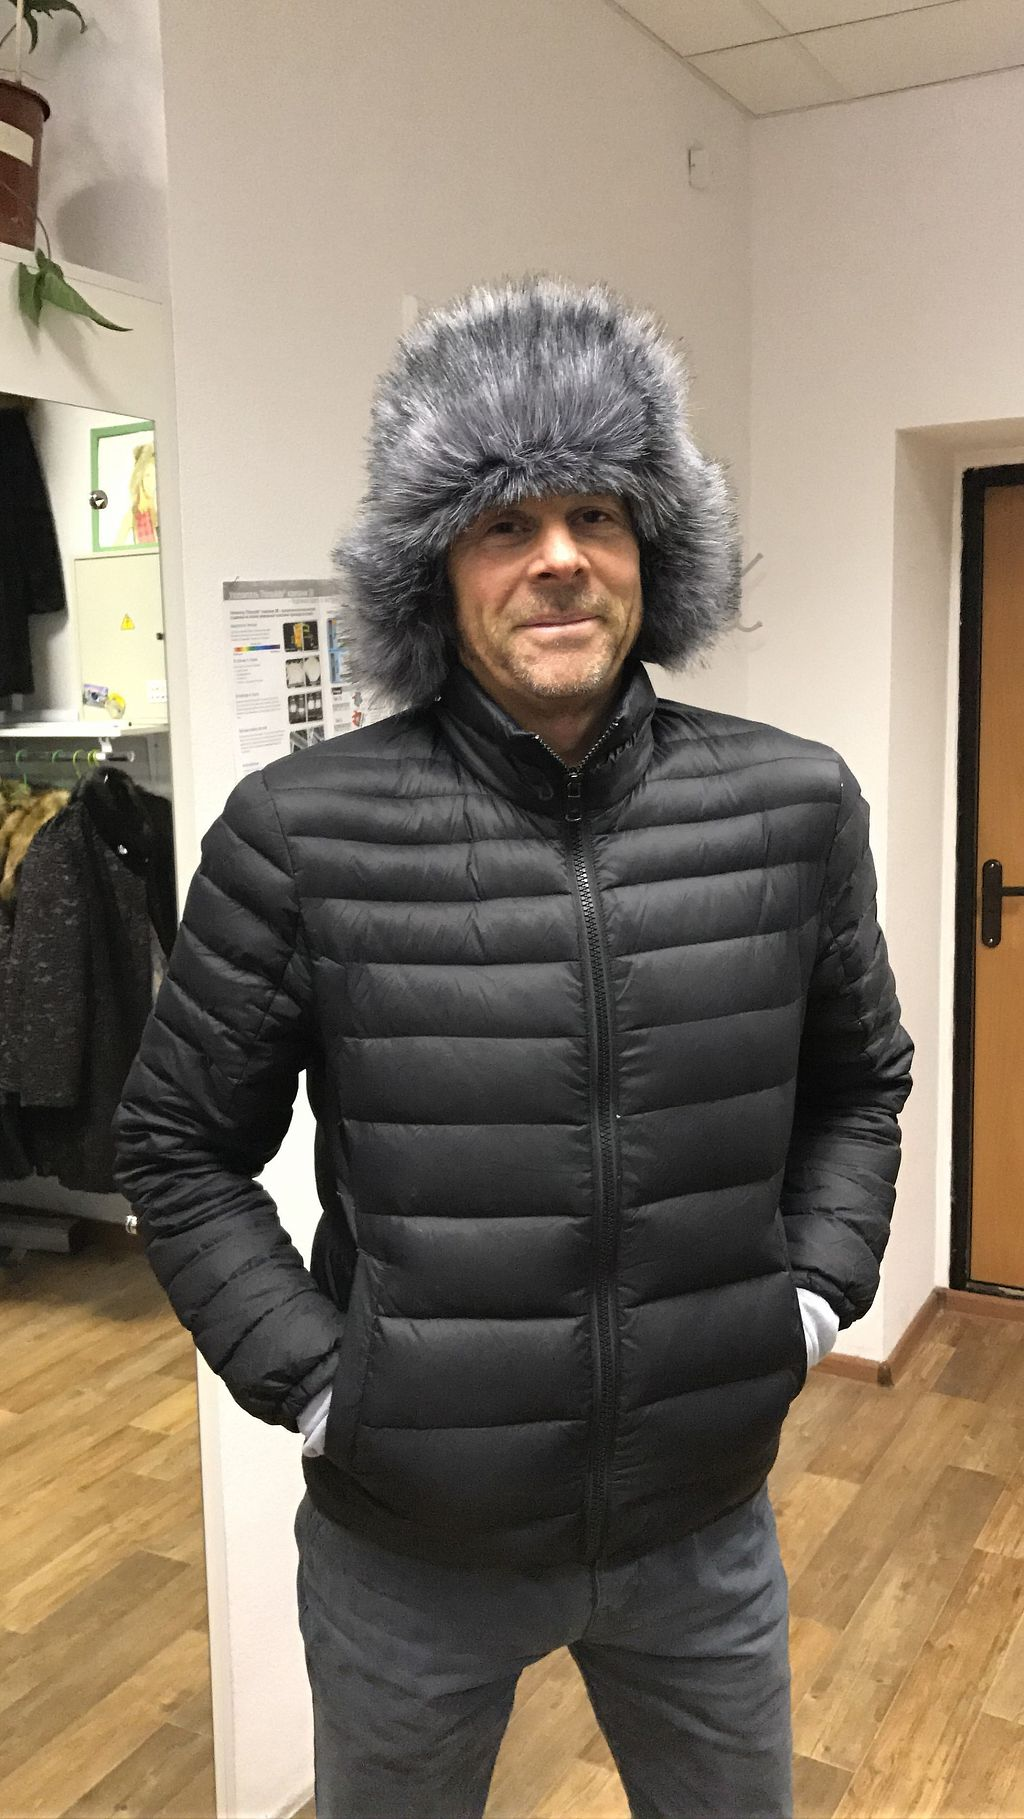 """Photo of UNREAL Fur Coat  by <a href=""""/members/profile/YoungLancashire"""">YoungLancashire</a> <br/>Decision Time... Yes I will buy the hat! <br/> January 3, 2018  - <a href='/contact/abuse/image/86631/342560'>Report</a>"""